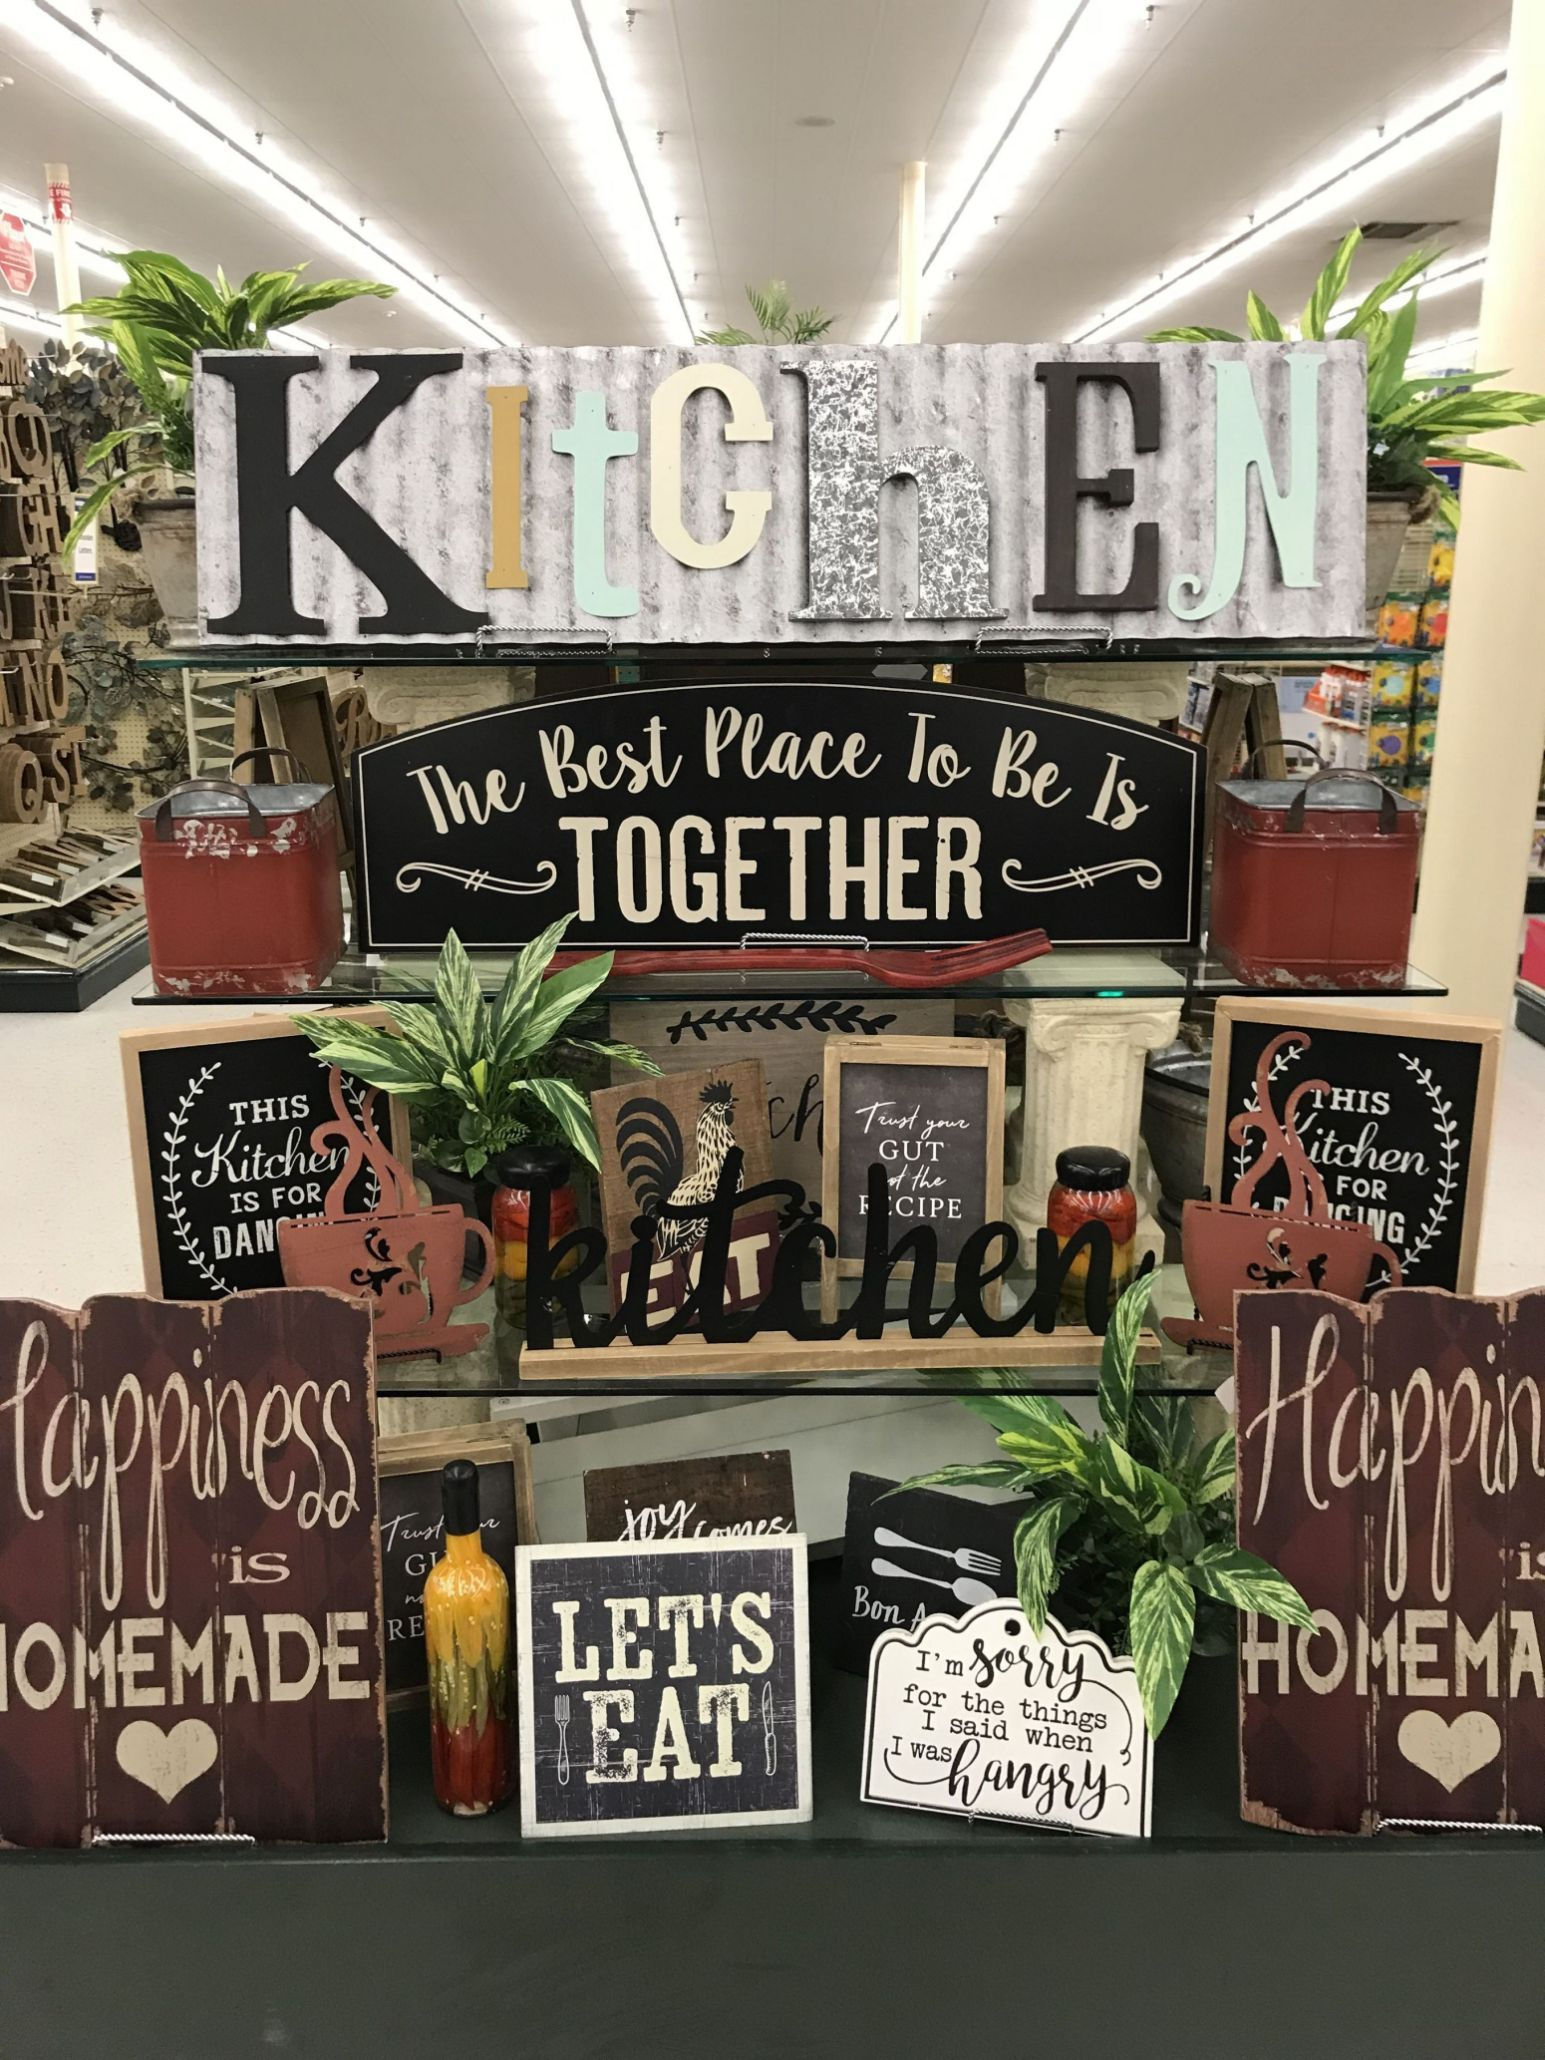 40 creative hobby lobby farmhouse decor ideas hobby lobby decor farmhouse kitchen decor on kitchen decor themes hobby lobby id=25406